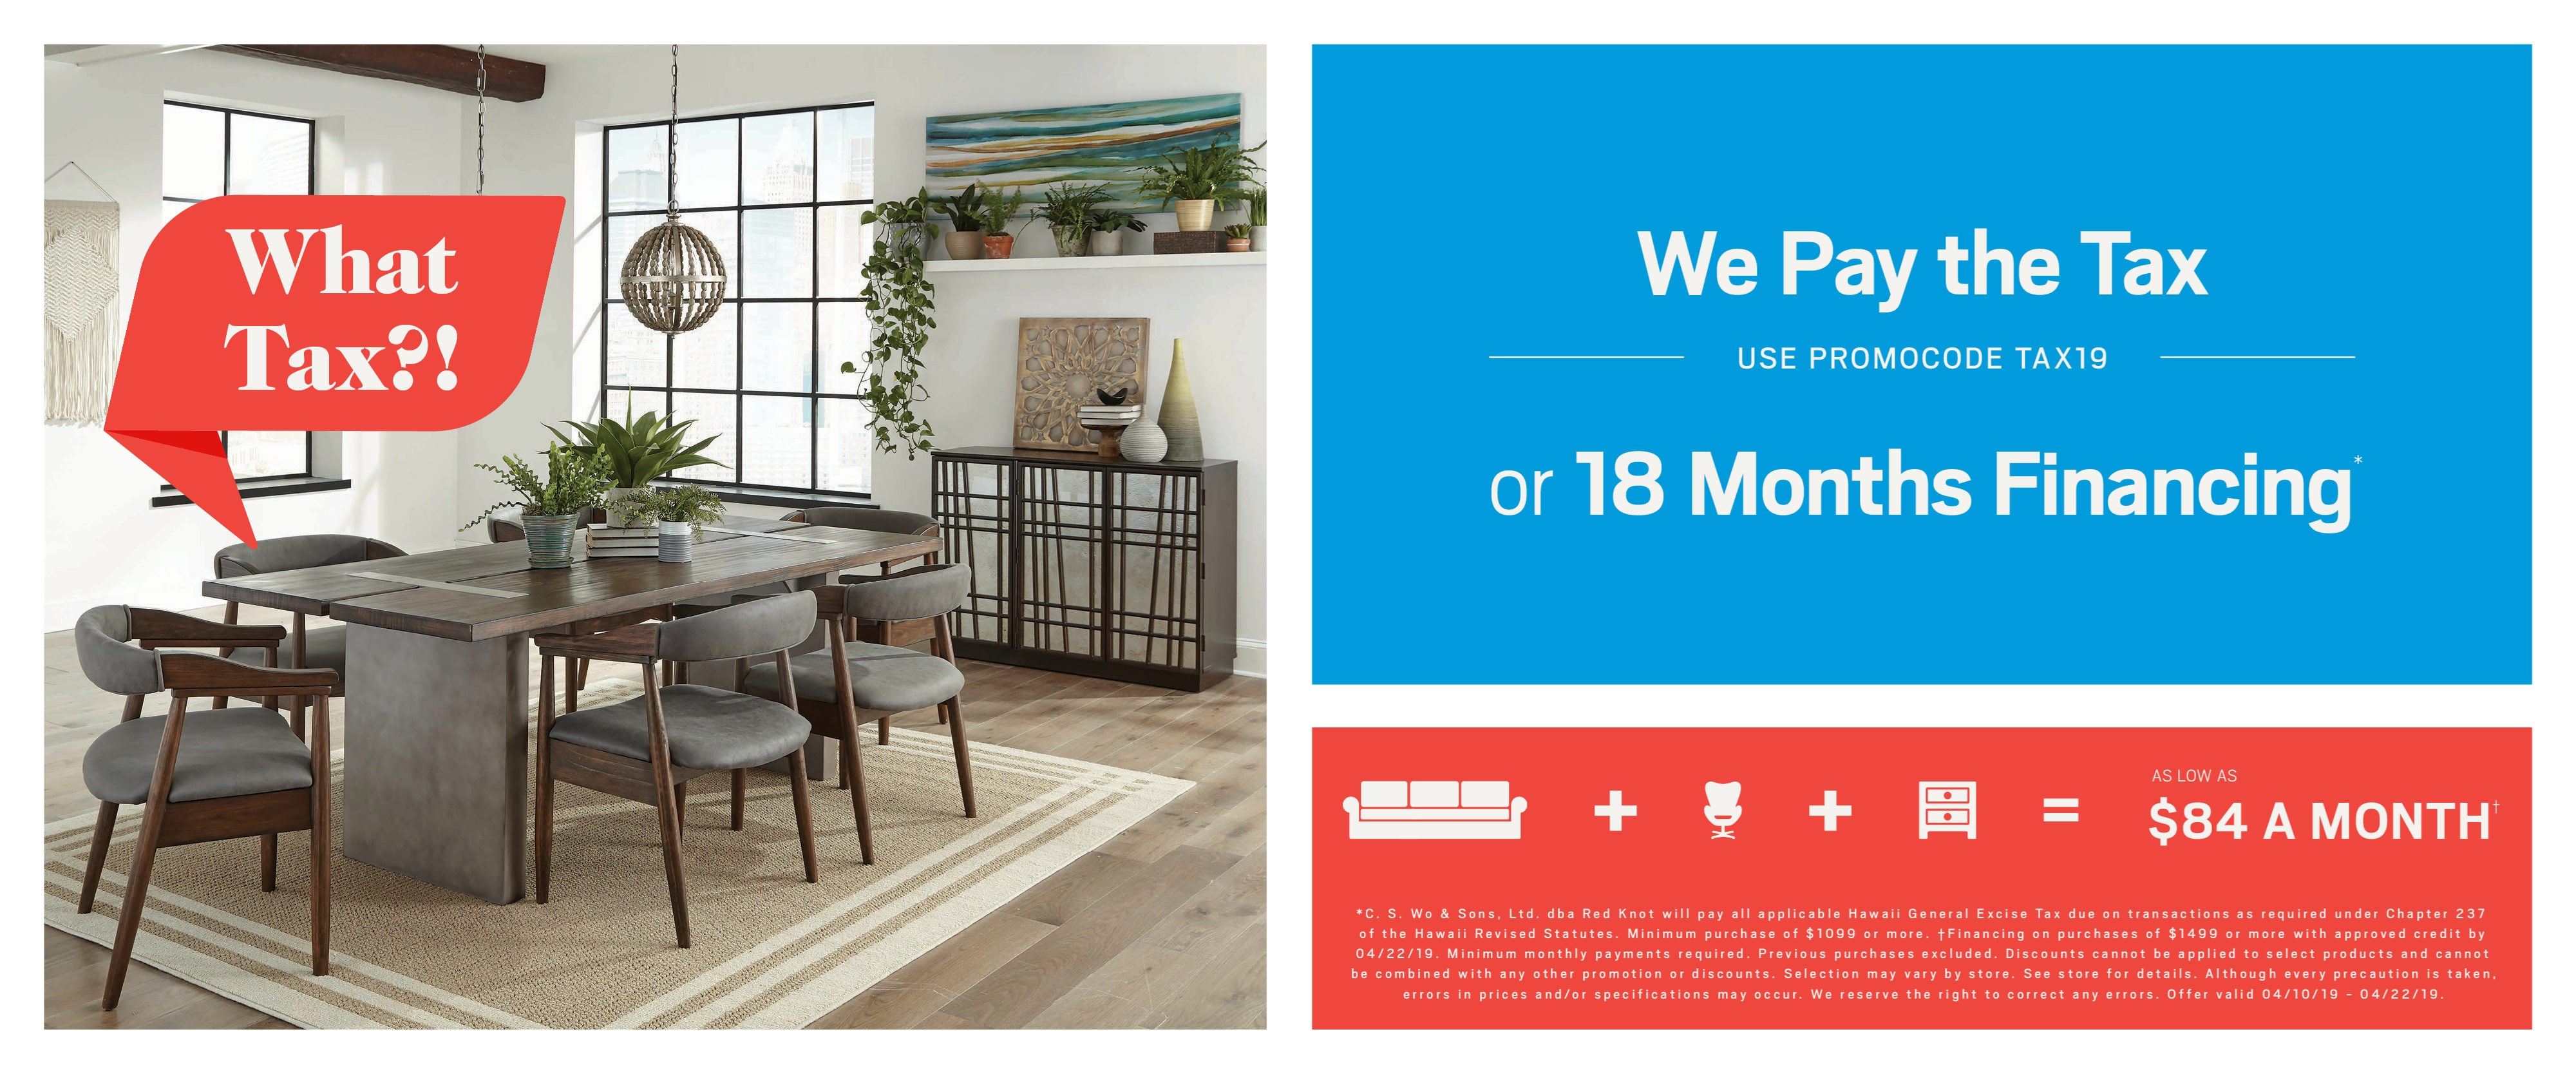 We pay the tax (use promocode TAX19) or ask about 18 months financing; see store for details.